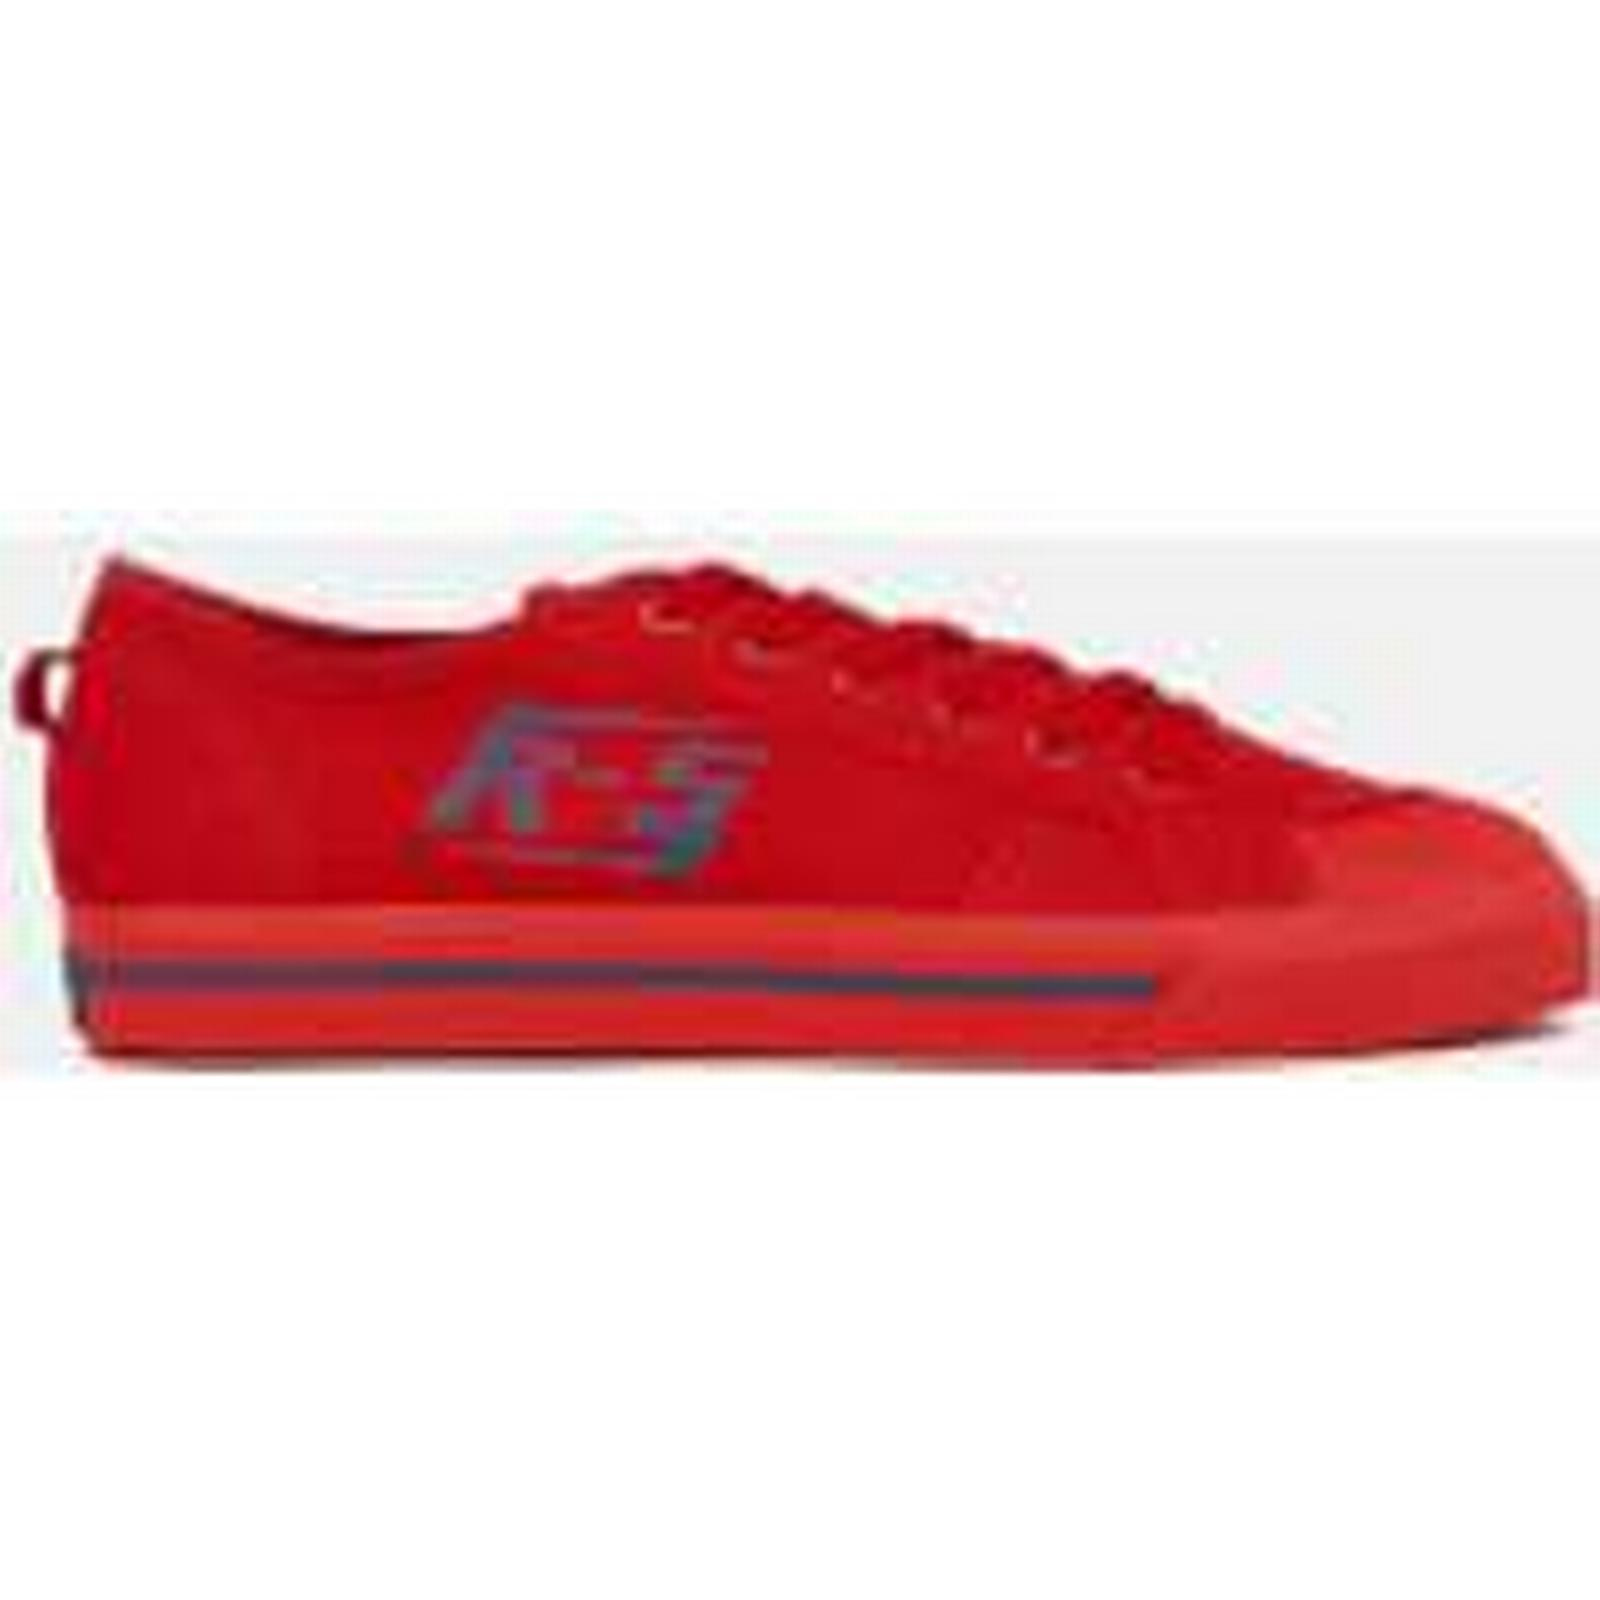 Adidas by Raf Simons Men's Spirit Low Trainers UK - Scarlet/Dust Rust - UK Trainers 9 - Red ab94e1